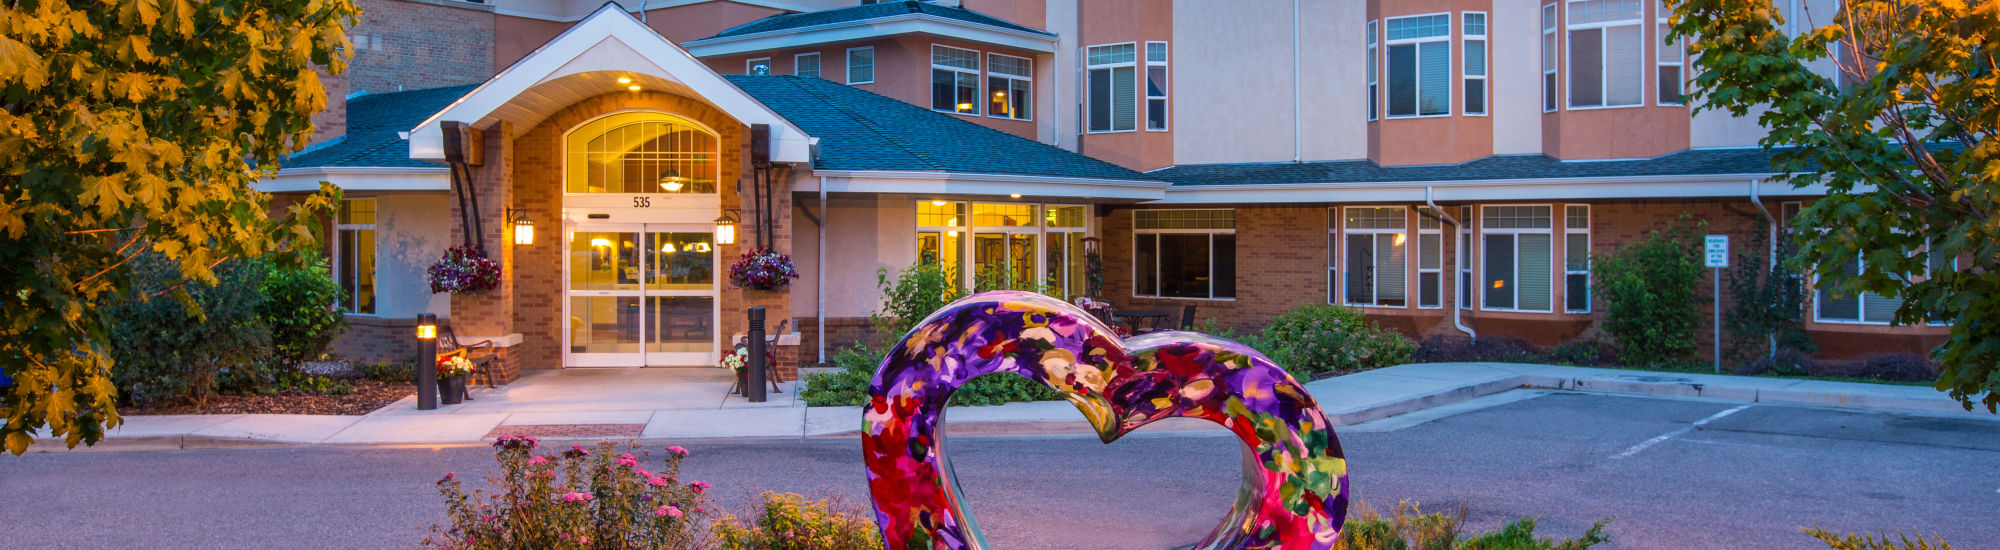 Our community at Hillcrest of Loveland in Loveland, Colorado